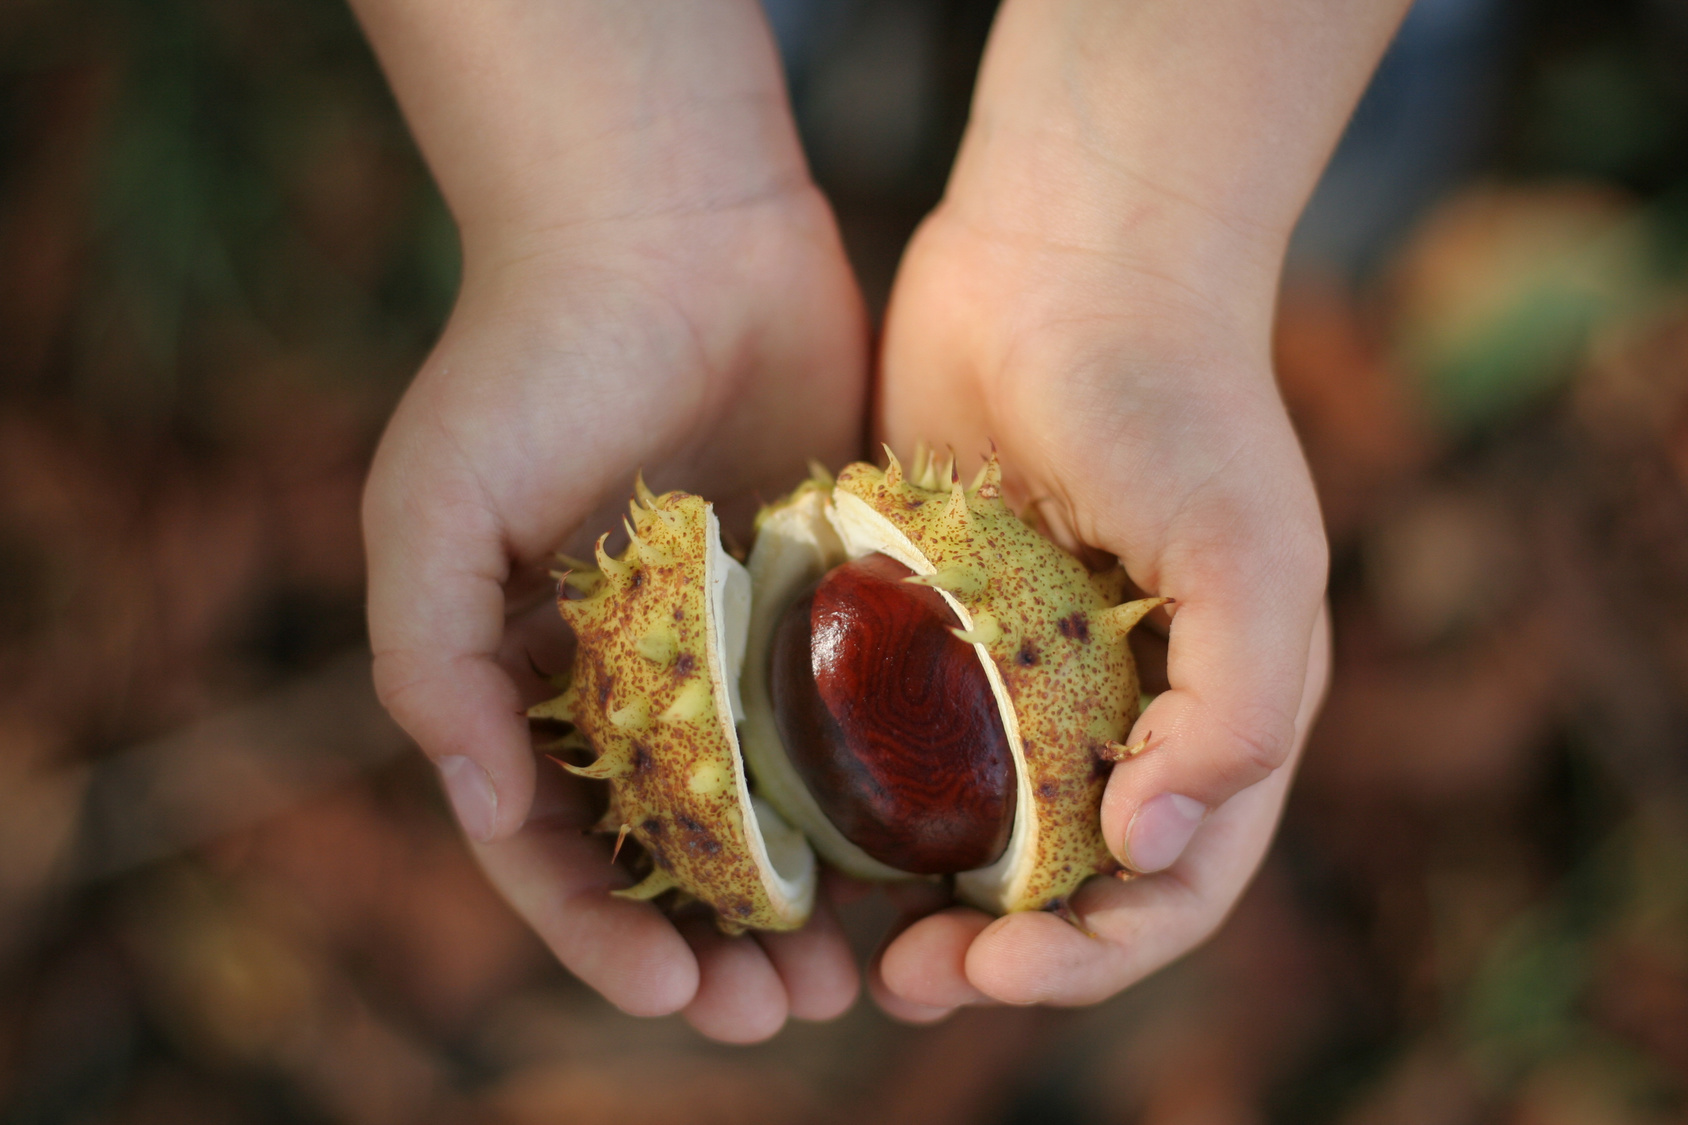 Children hands full of chestnuts in autumn colors